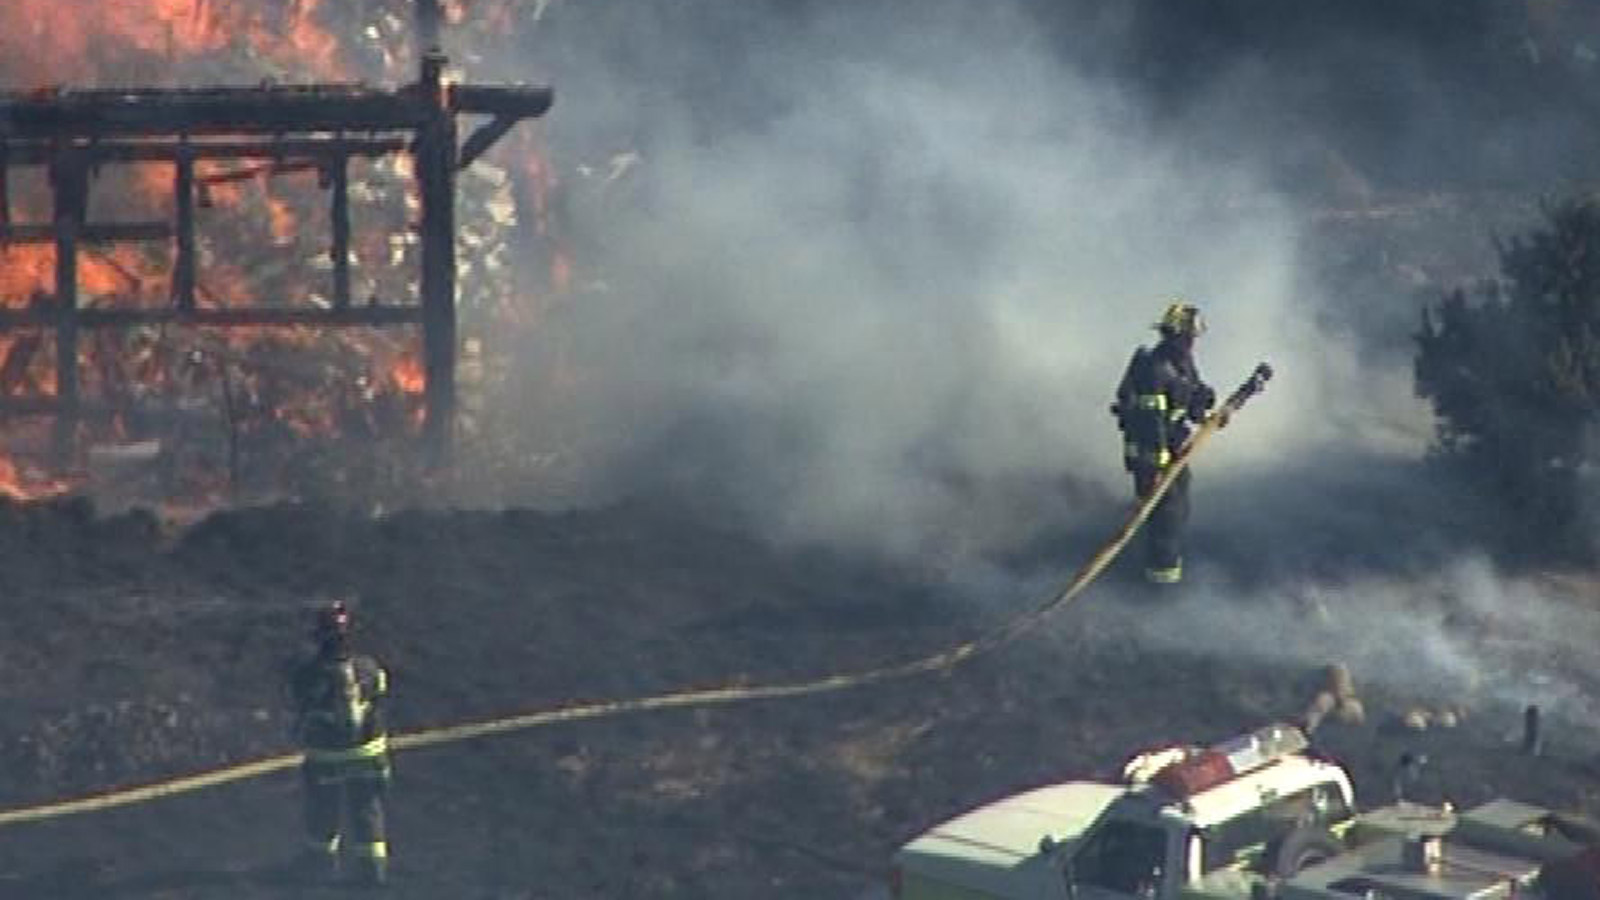 An image from Copter4 over a fire on Monday in Weld County that destroyed a structure (credit: CBS)